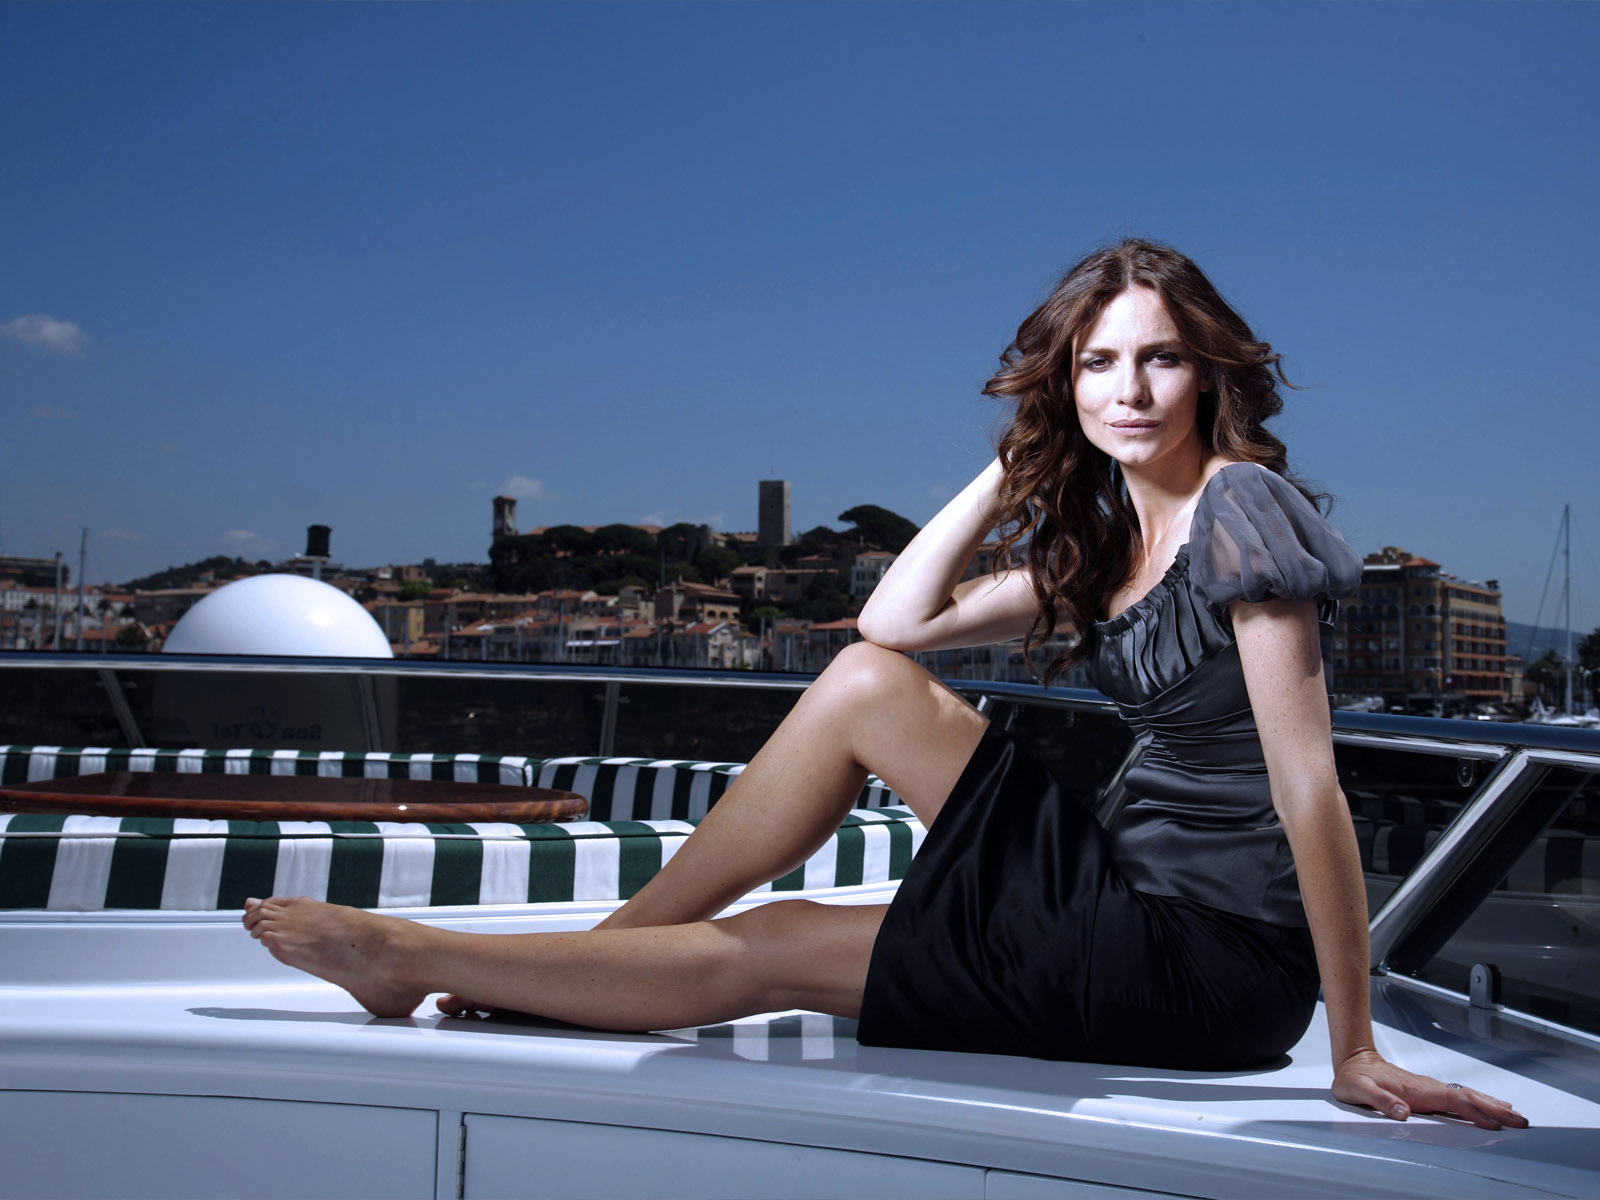 Smart Girl Hd Wallpaper Saffron Burrows Wallpaper Free Hd Backgrounds Images Pictures